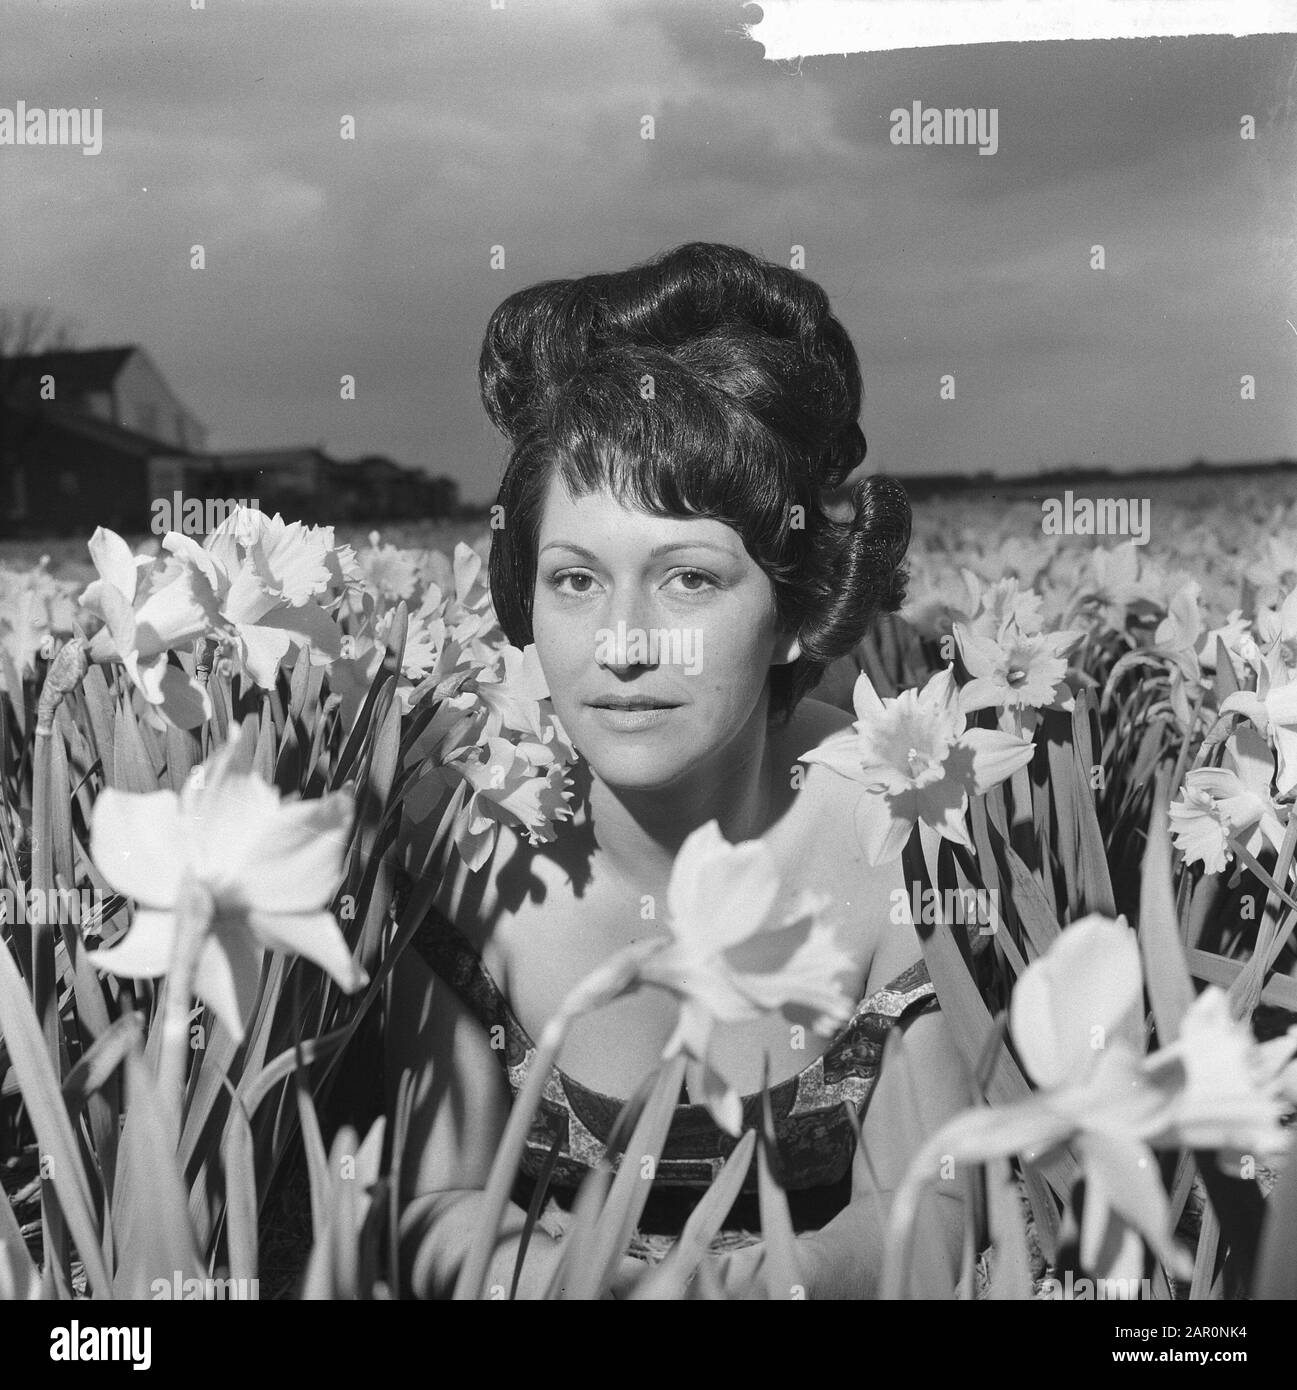 La Ligne Tulpia A New Hairstyle Of The Women S Hairdresser Hans Heemskerk Inspired By Flowers Model Jose With The Hairstyle Date 22 April 1964 Keywords Hairstyles Daffodils Personal Name Heemskerk Hans La